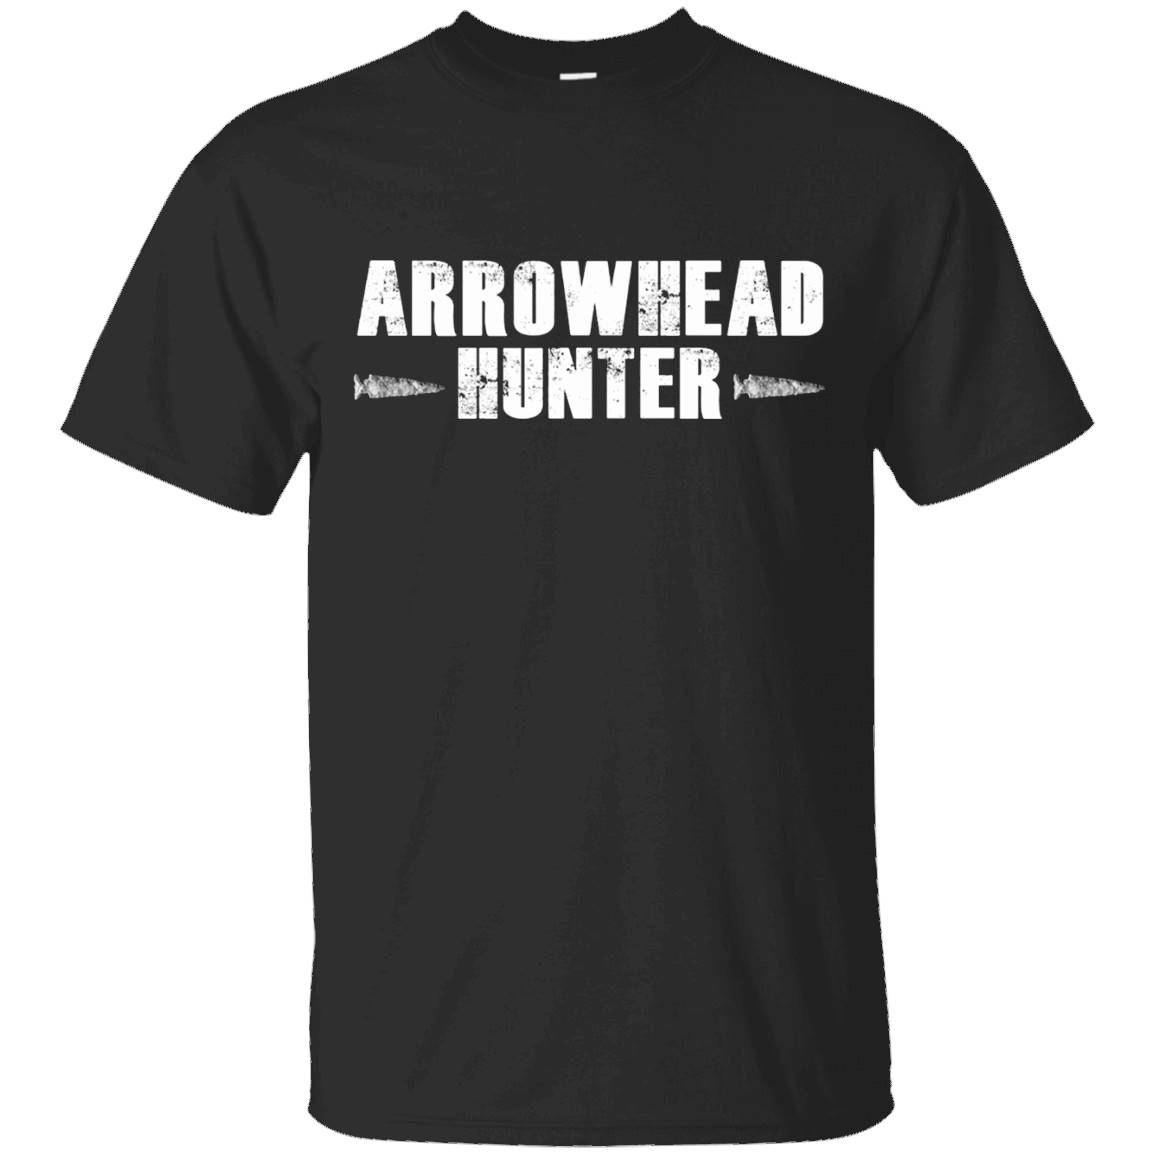 Arrowhead Hunter T-Shirt